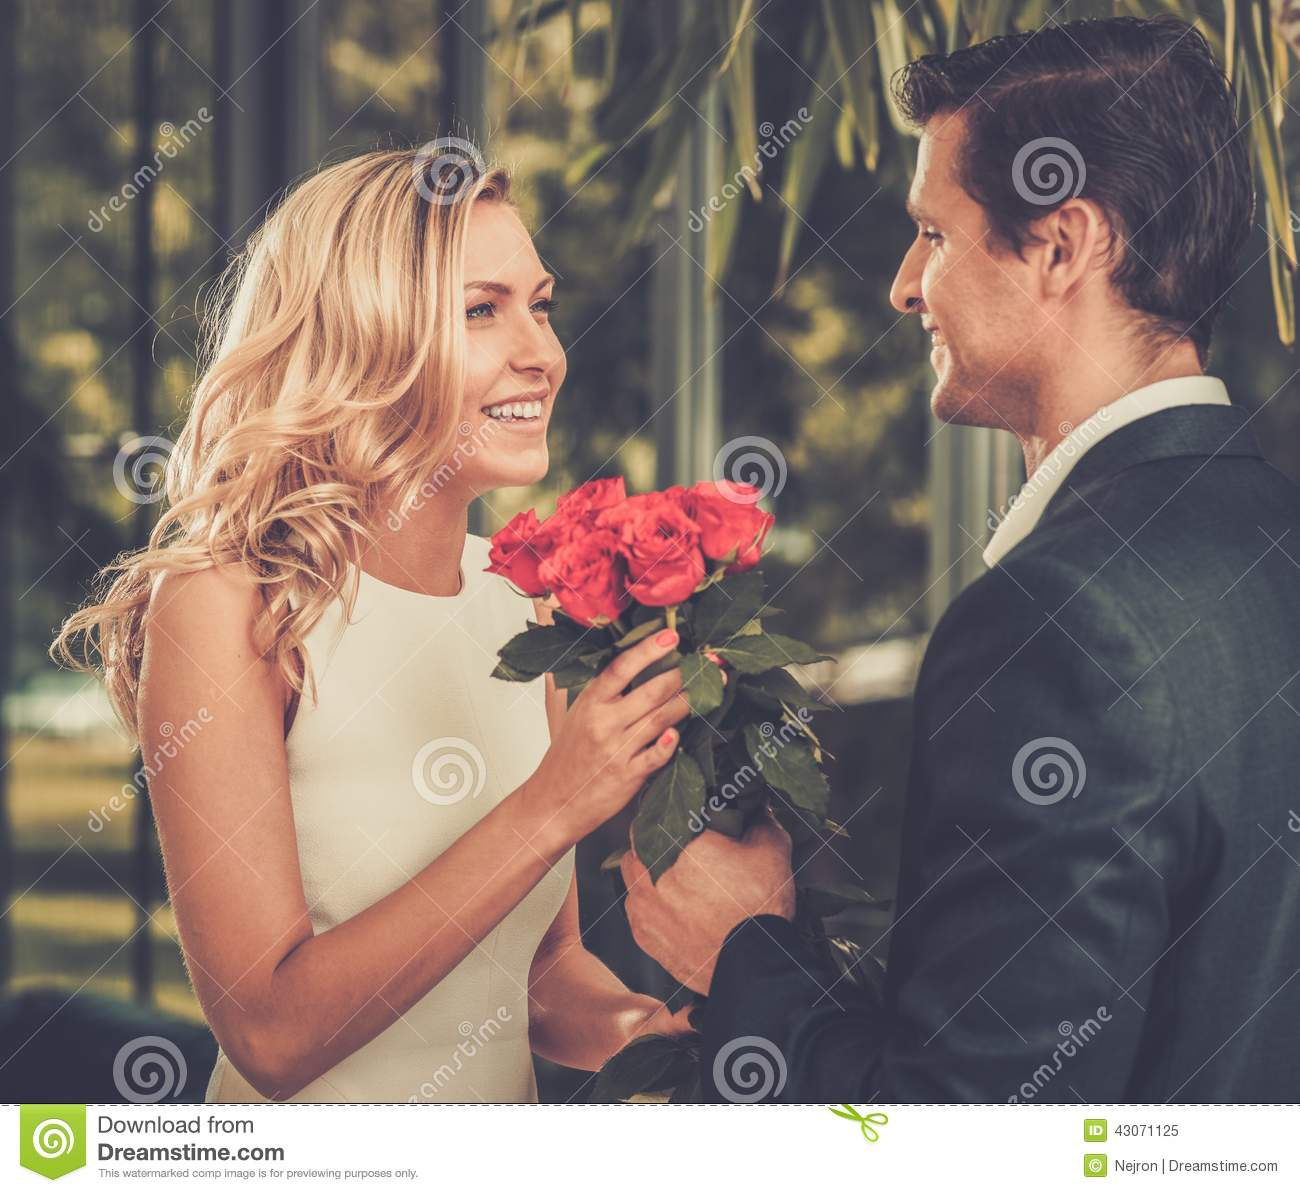 dating handsome guys We choose asshles because of the danger factor involved in dating guys who are strong and conceited we know they're wrong for us,  nice guys are boring.